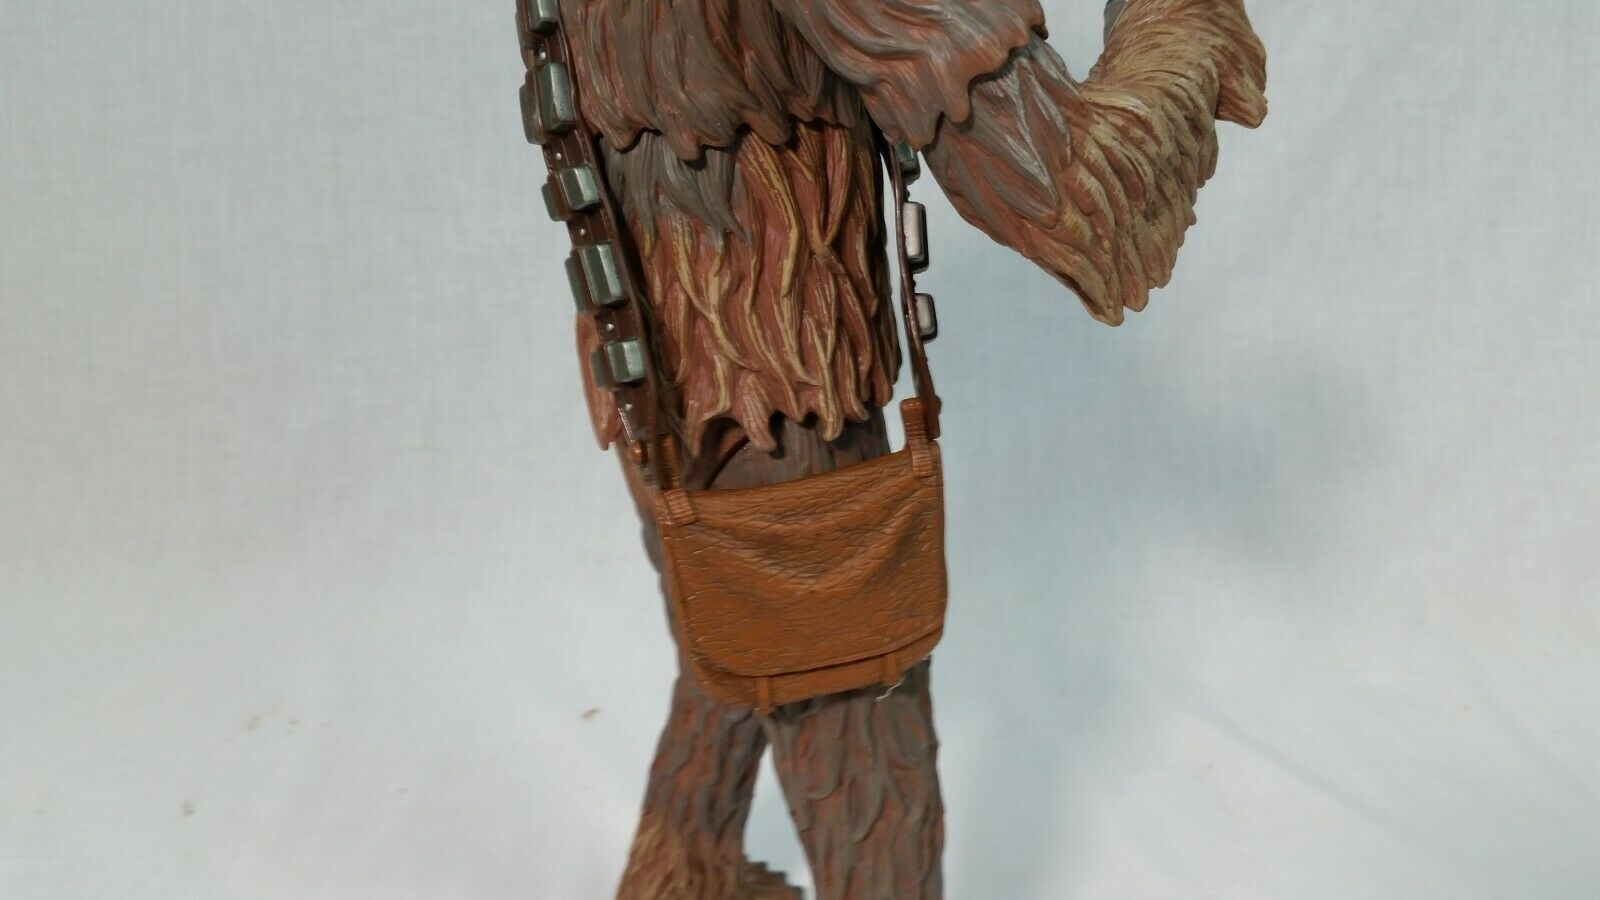 STAR WARS Chewbacca Action Figure, 14 Inch Tall - 2004 LFL Hasbro image 5